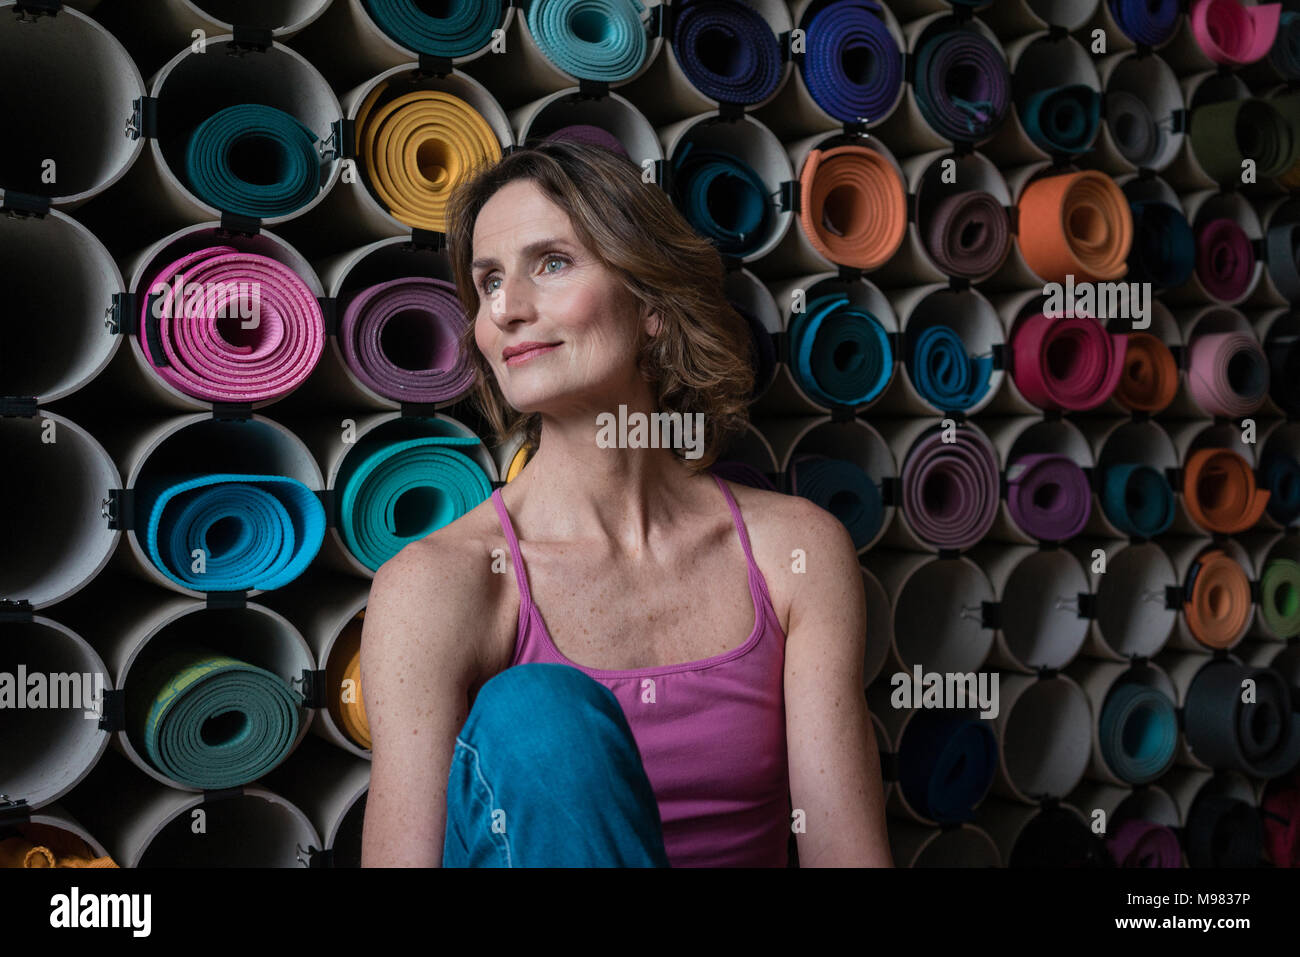 Smiling mature woman in front of assortment of yoga mats - Stock Image